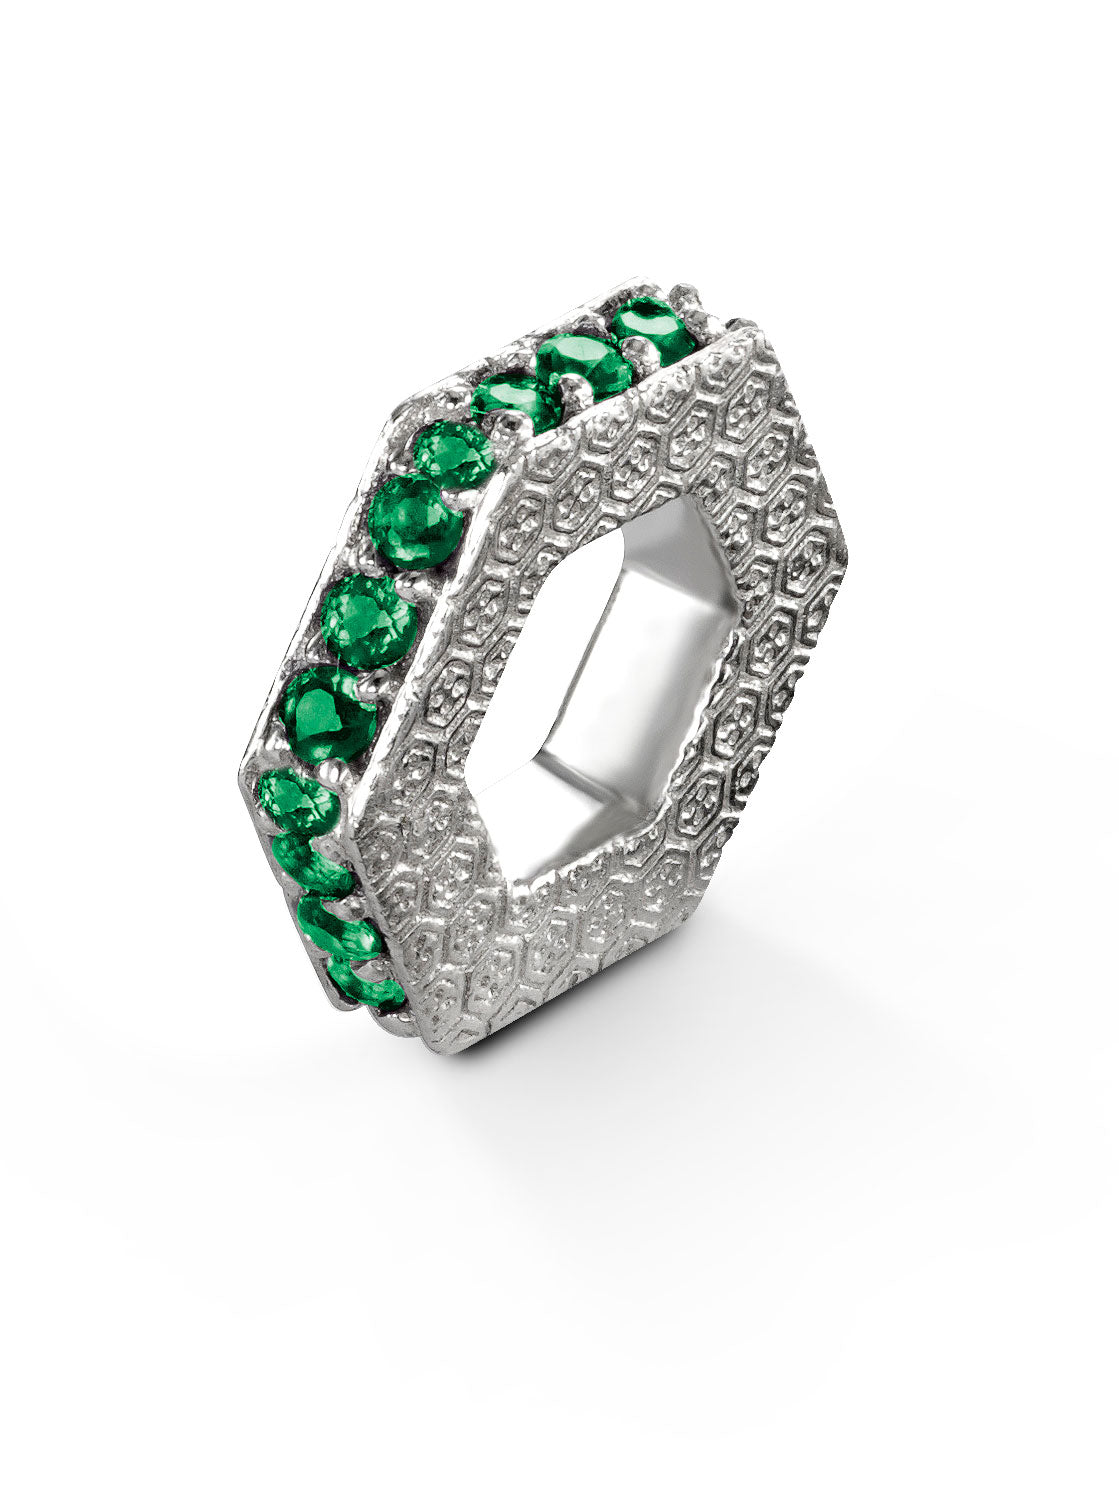 Bcouture May Keepsake-Emerald